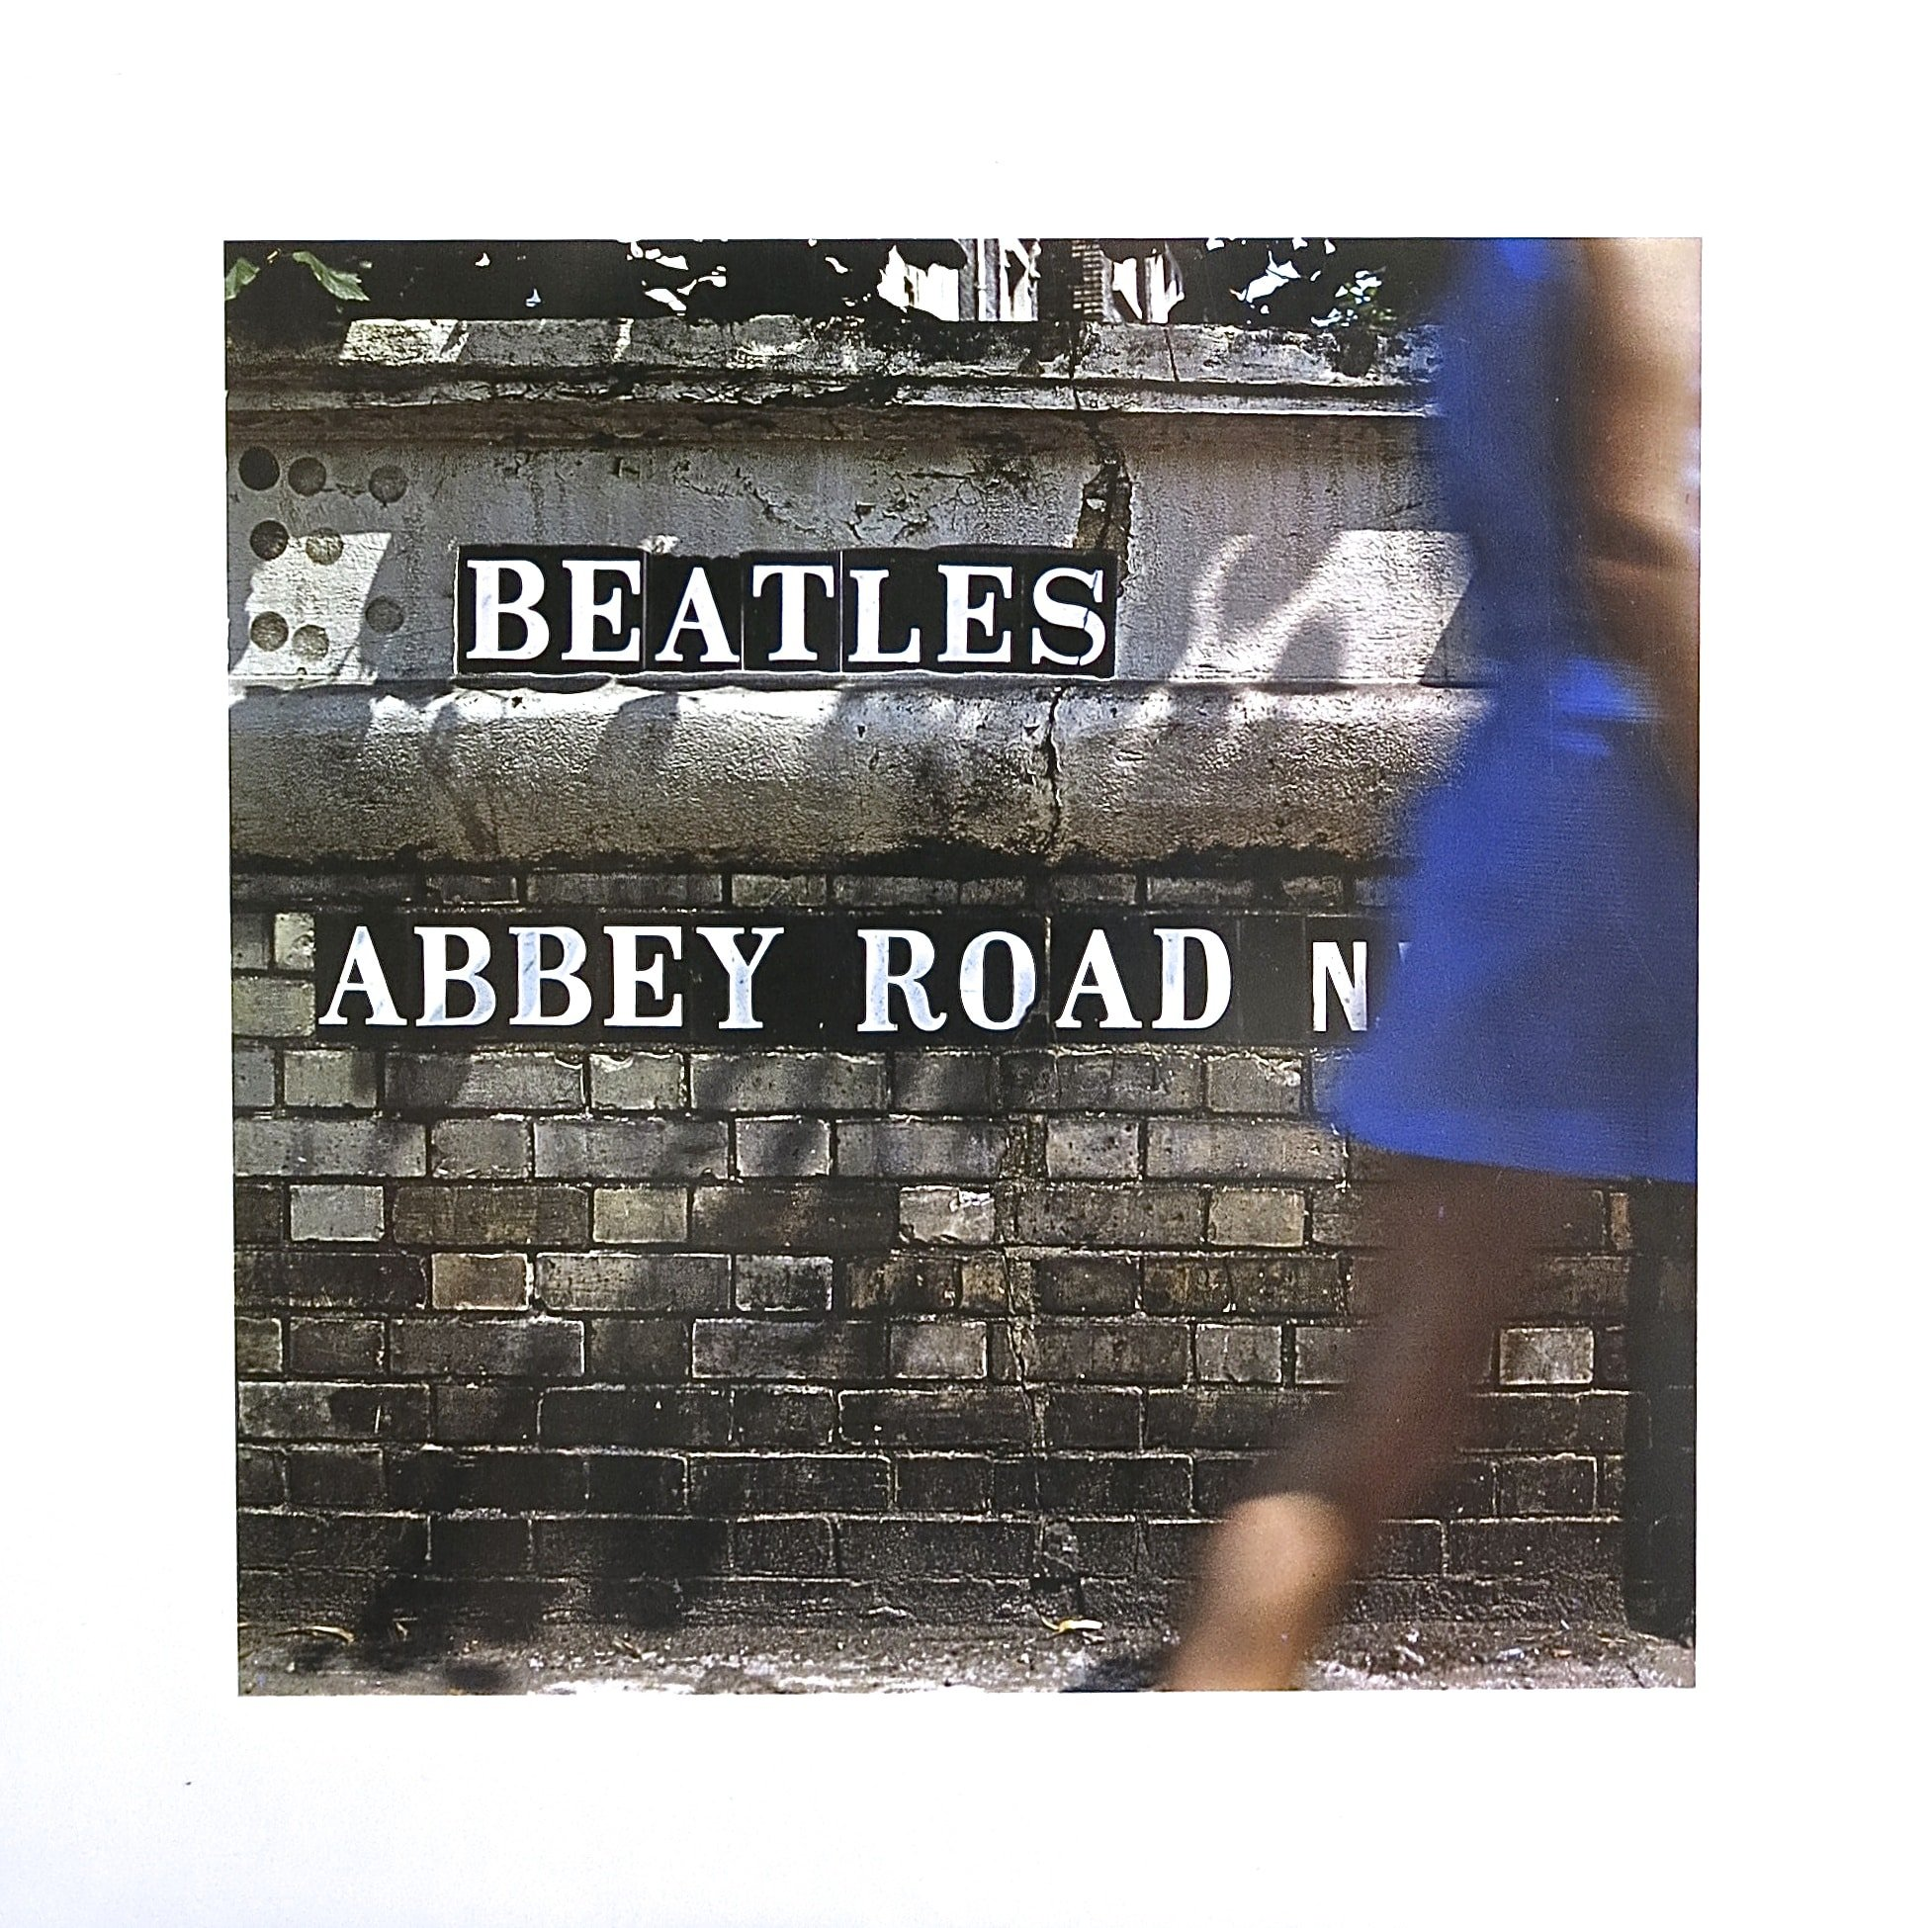 The Beatles  Original Artwork From Abbey Road Album Cover